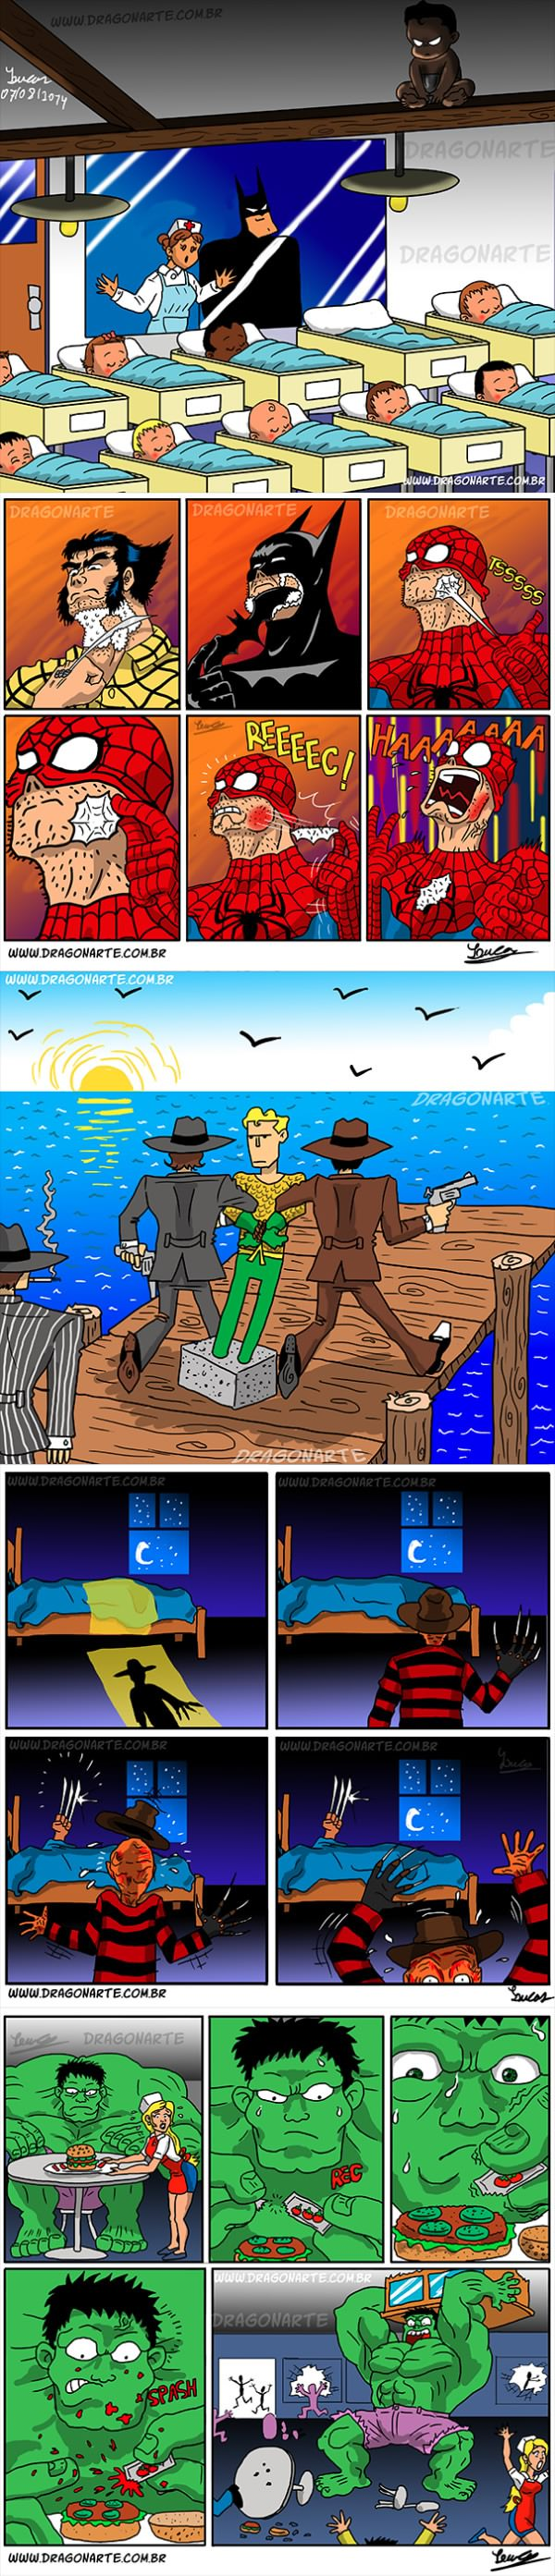 funny superhero jokes in comic form, lol, marvel, hulk, spiderman, wolverine, batman